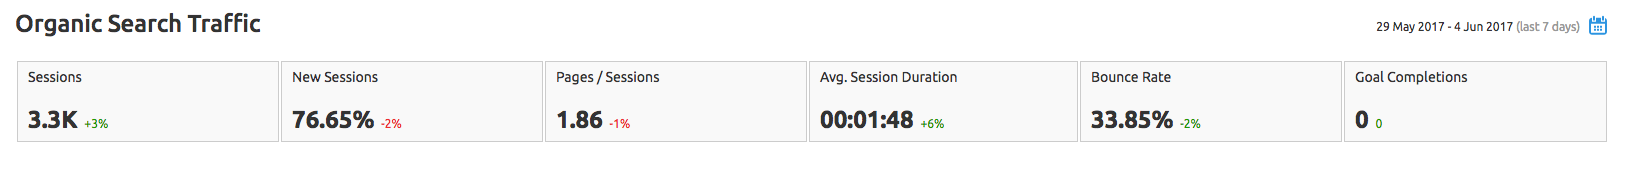 What's The Difference Between Sessions And New Sessions? image 1